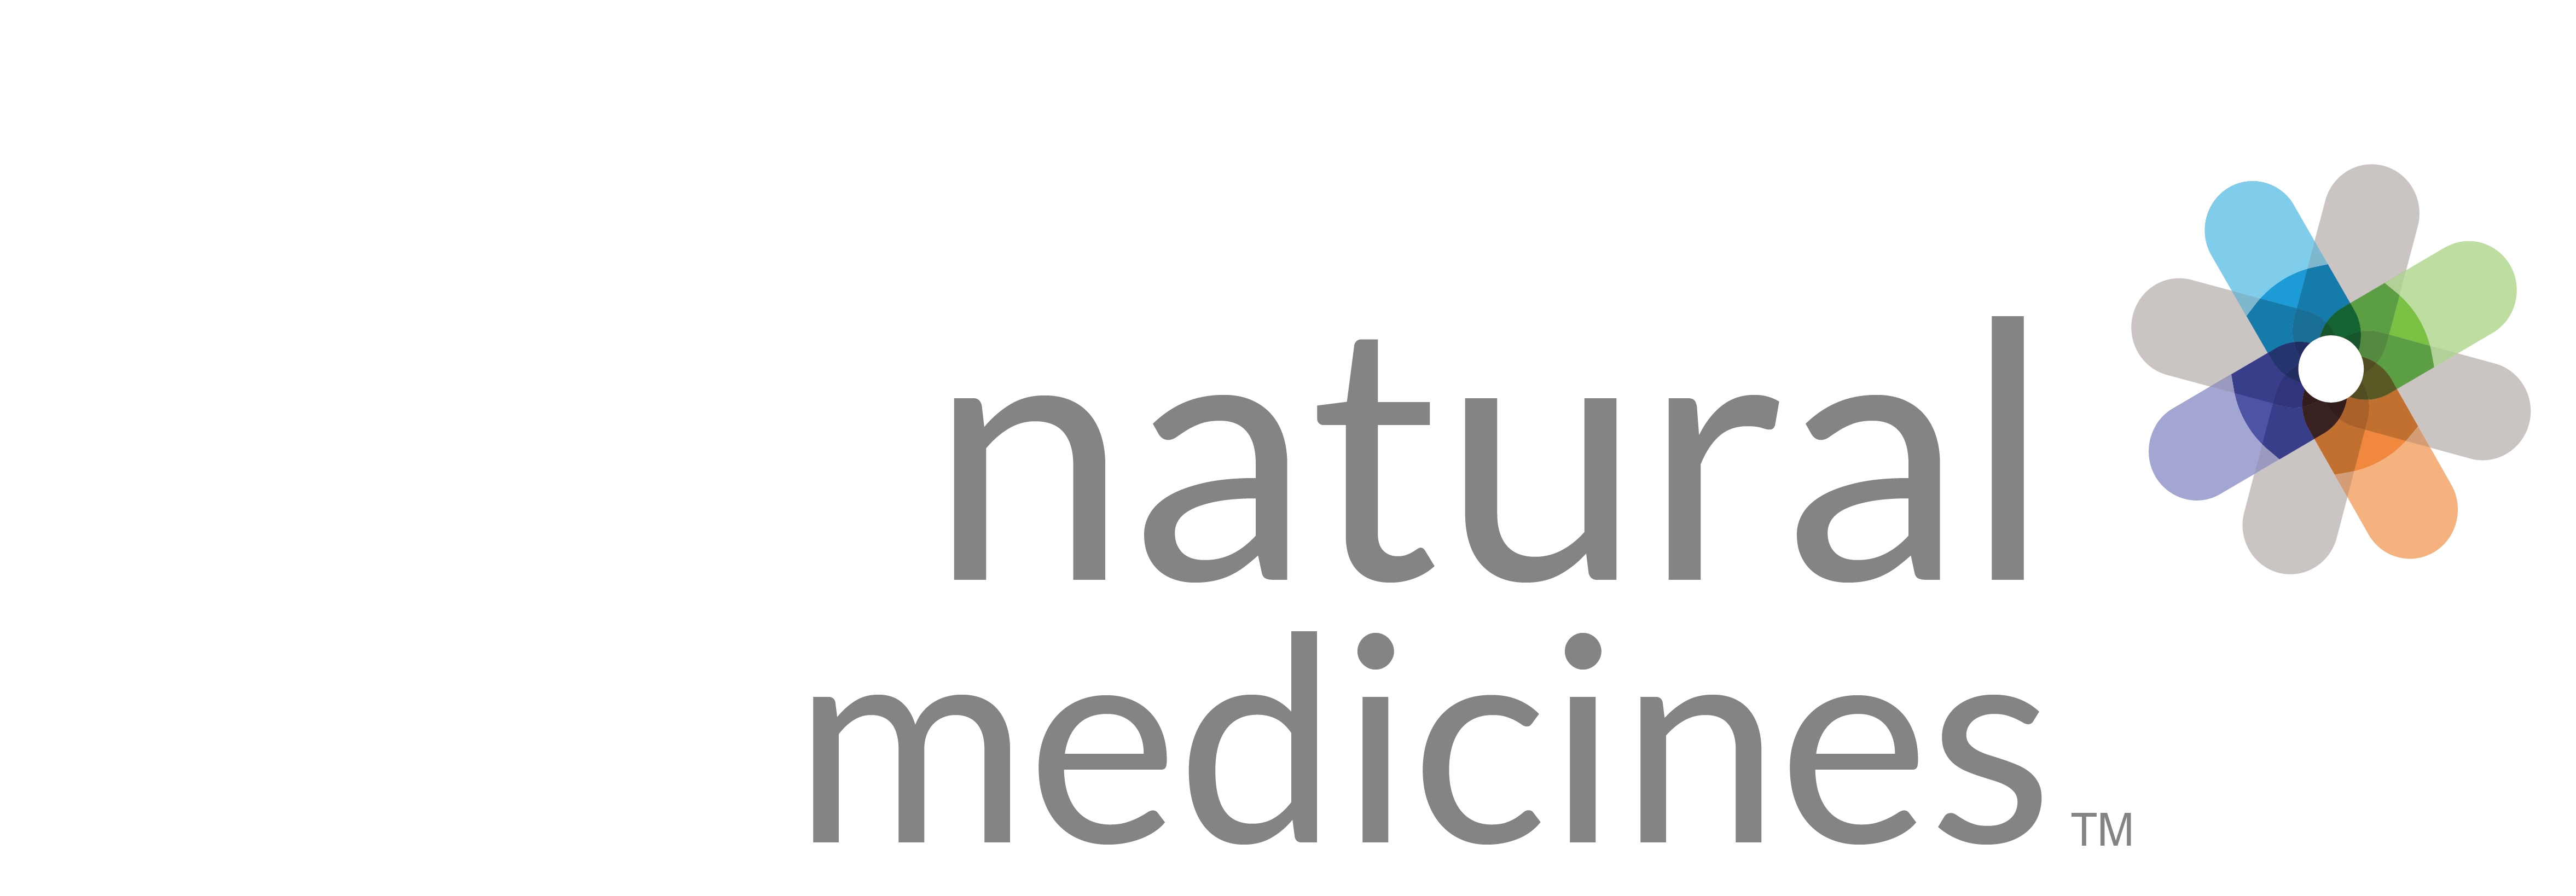 2016_design_-_NM_natural_medicines_-_TM.png